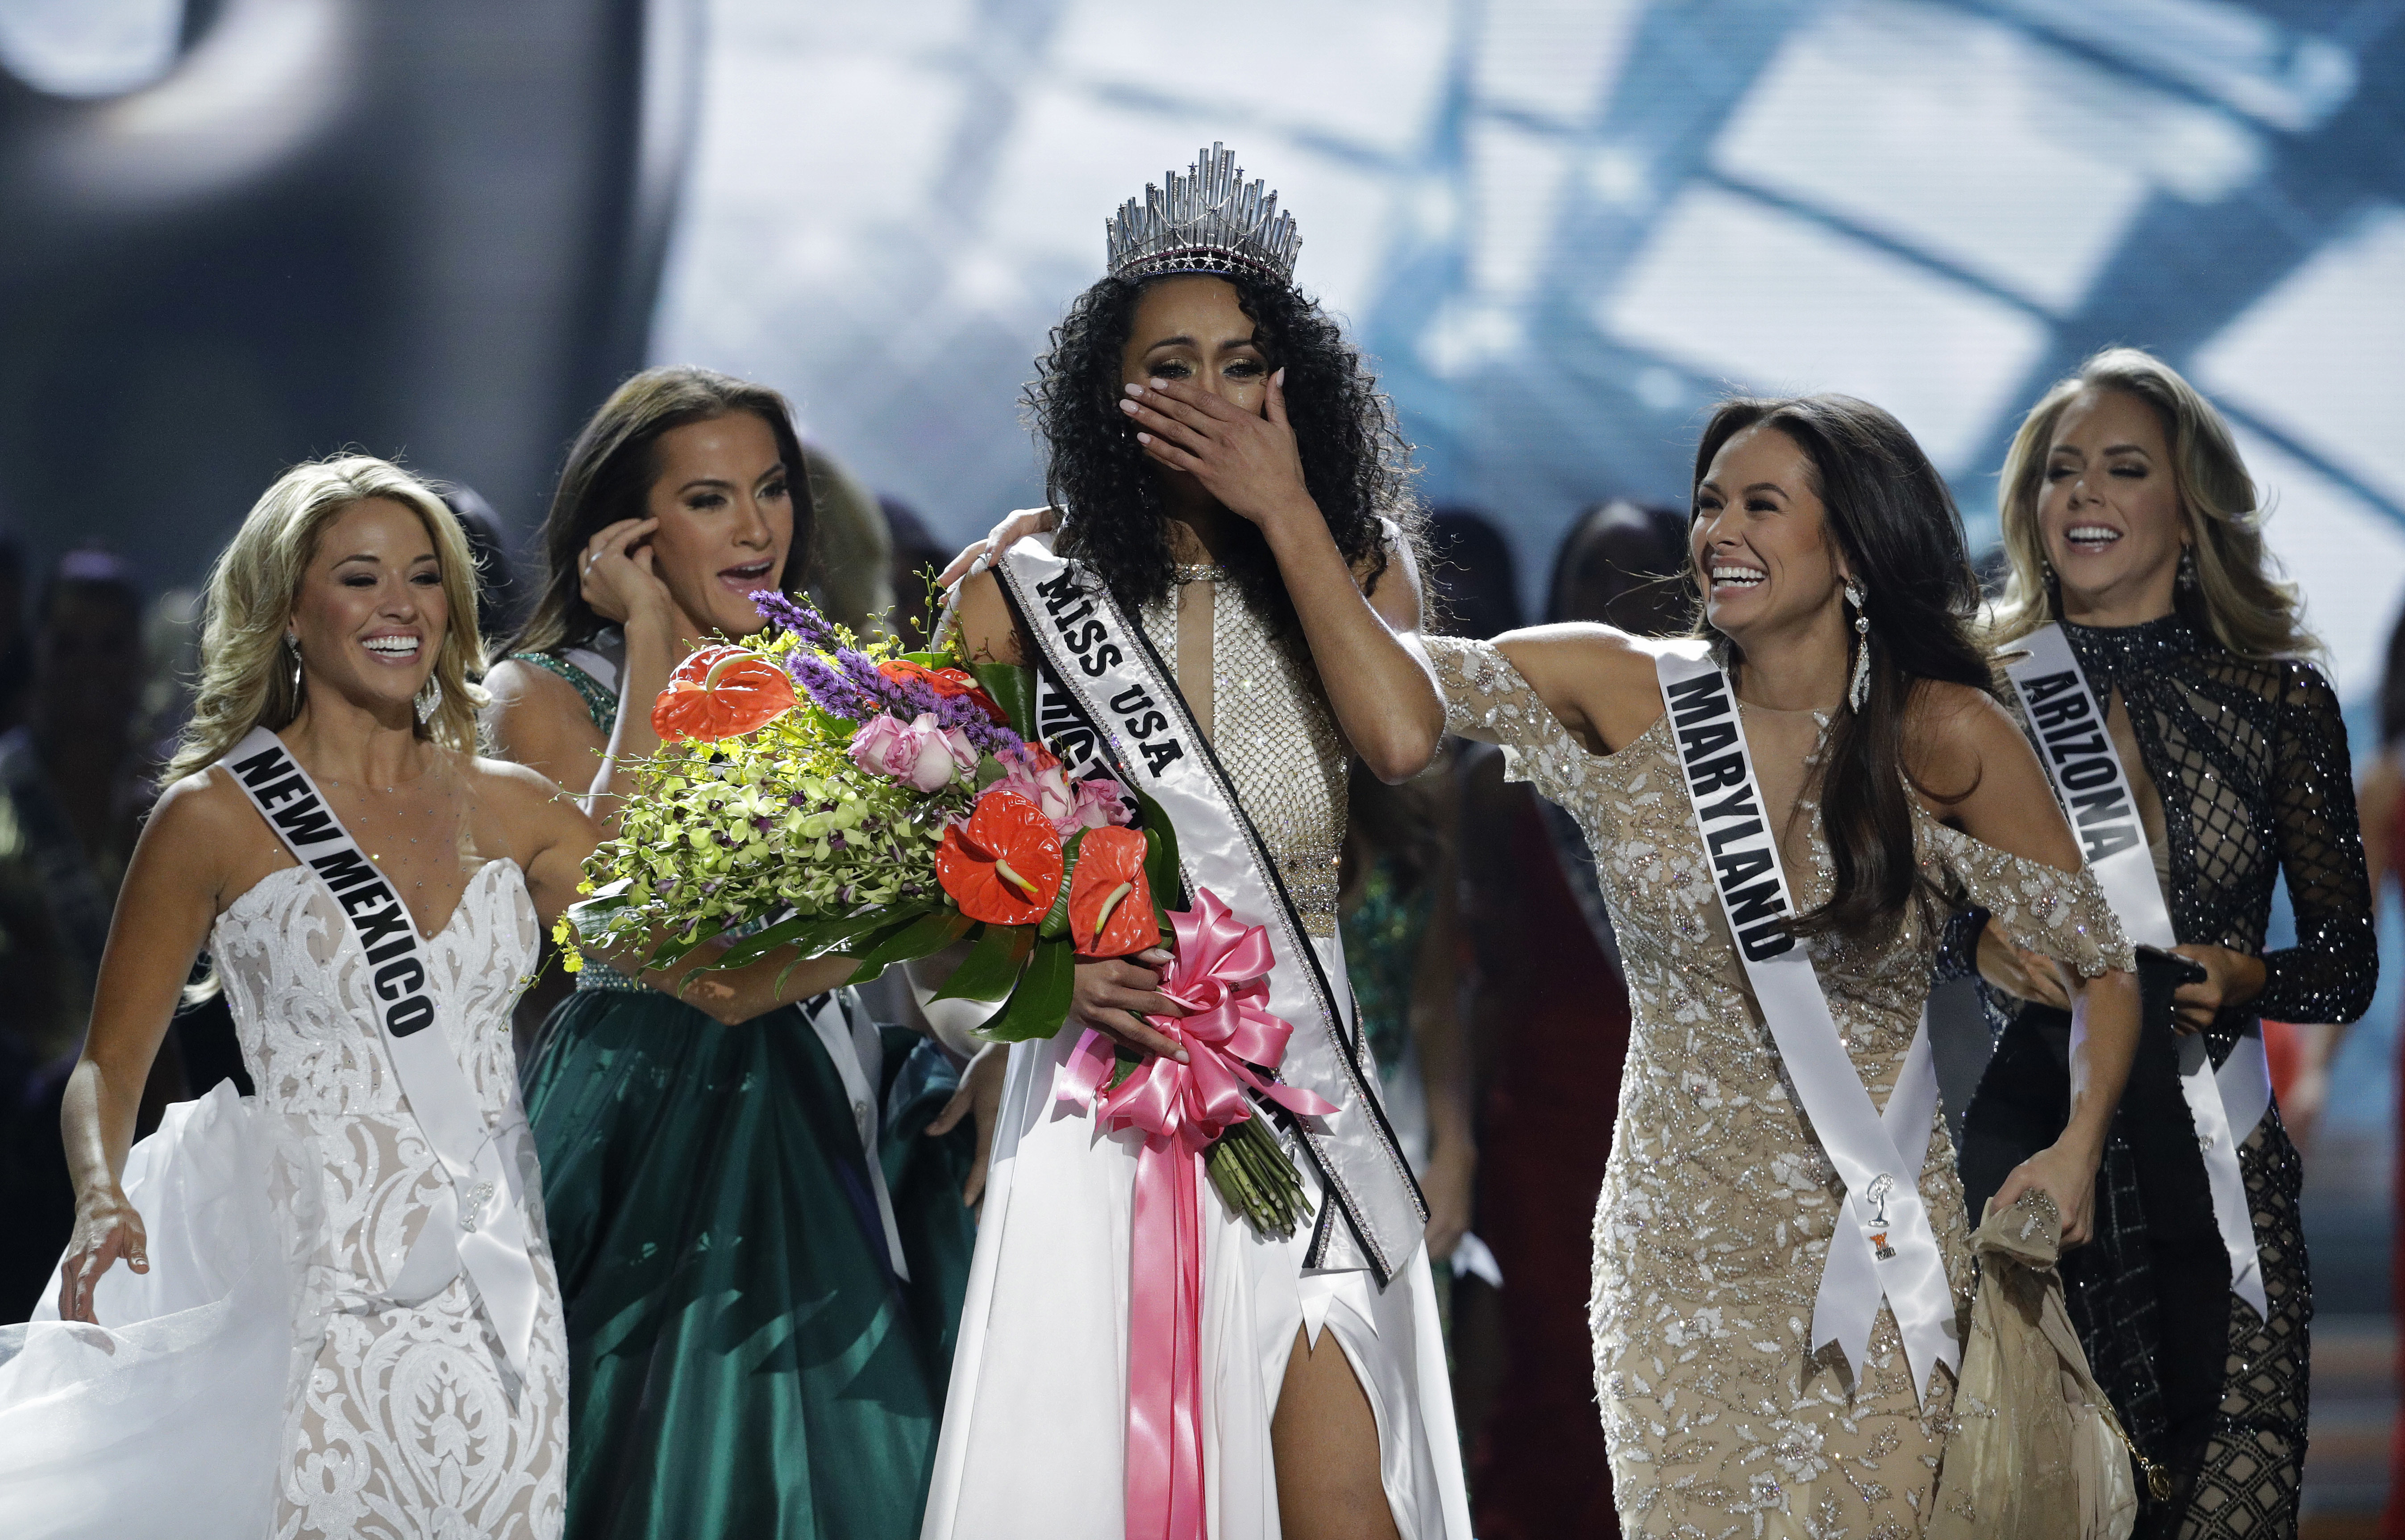 Miss USA-2 Miss District of Columbia USA Kara McCullough reacts after she was crowned the new Miss USA during the Miss USA contest Sunday, May 14, 2017, in Las Vegas. (AP Photo/John Locher)